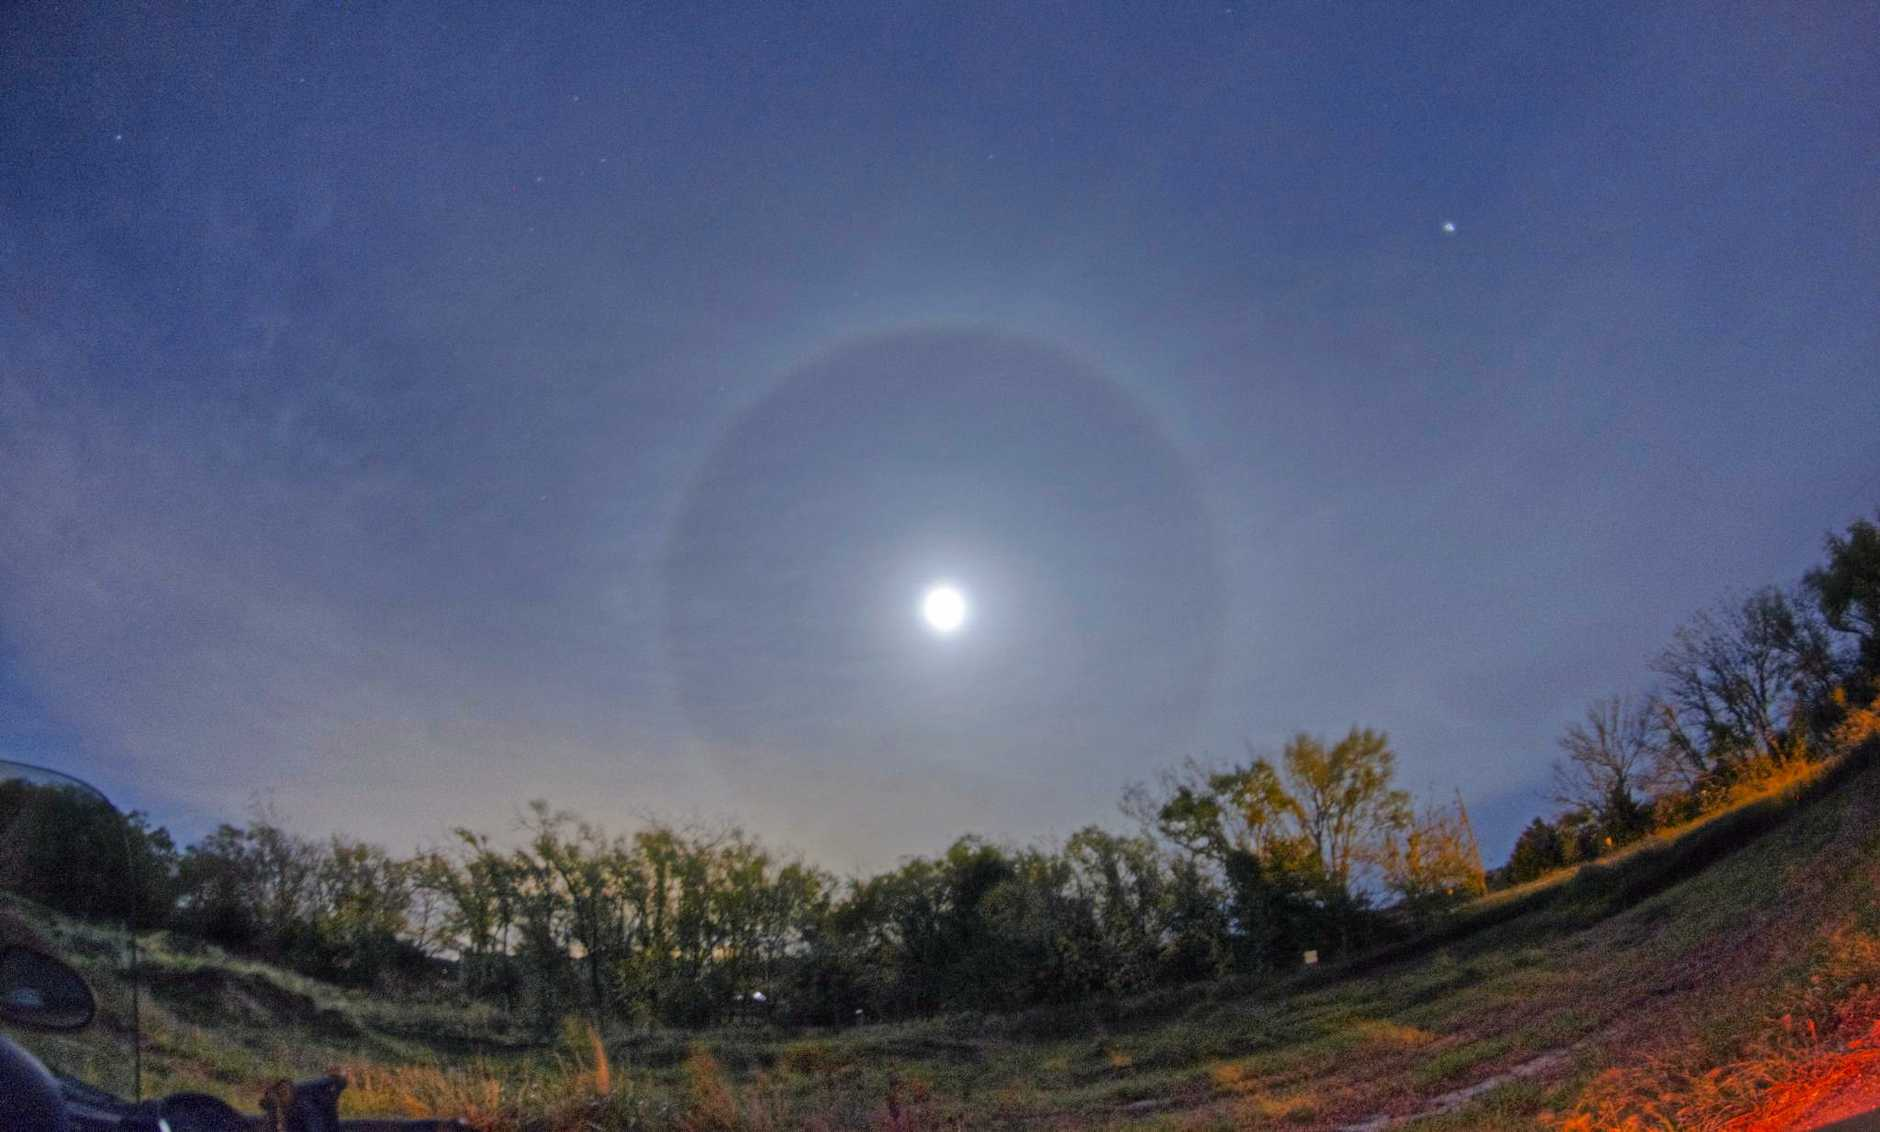 A ring around the moon is no old wives tale.